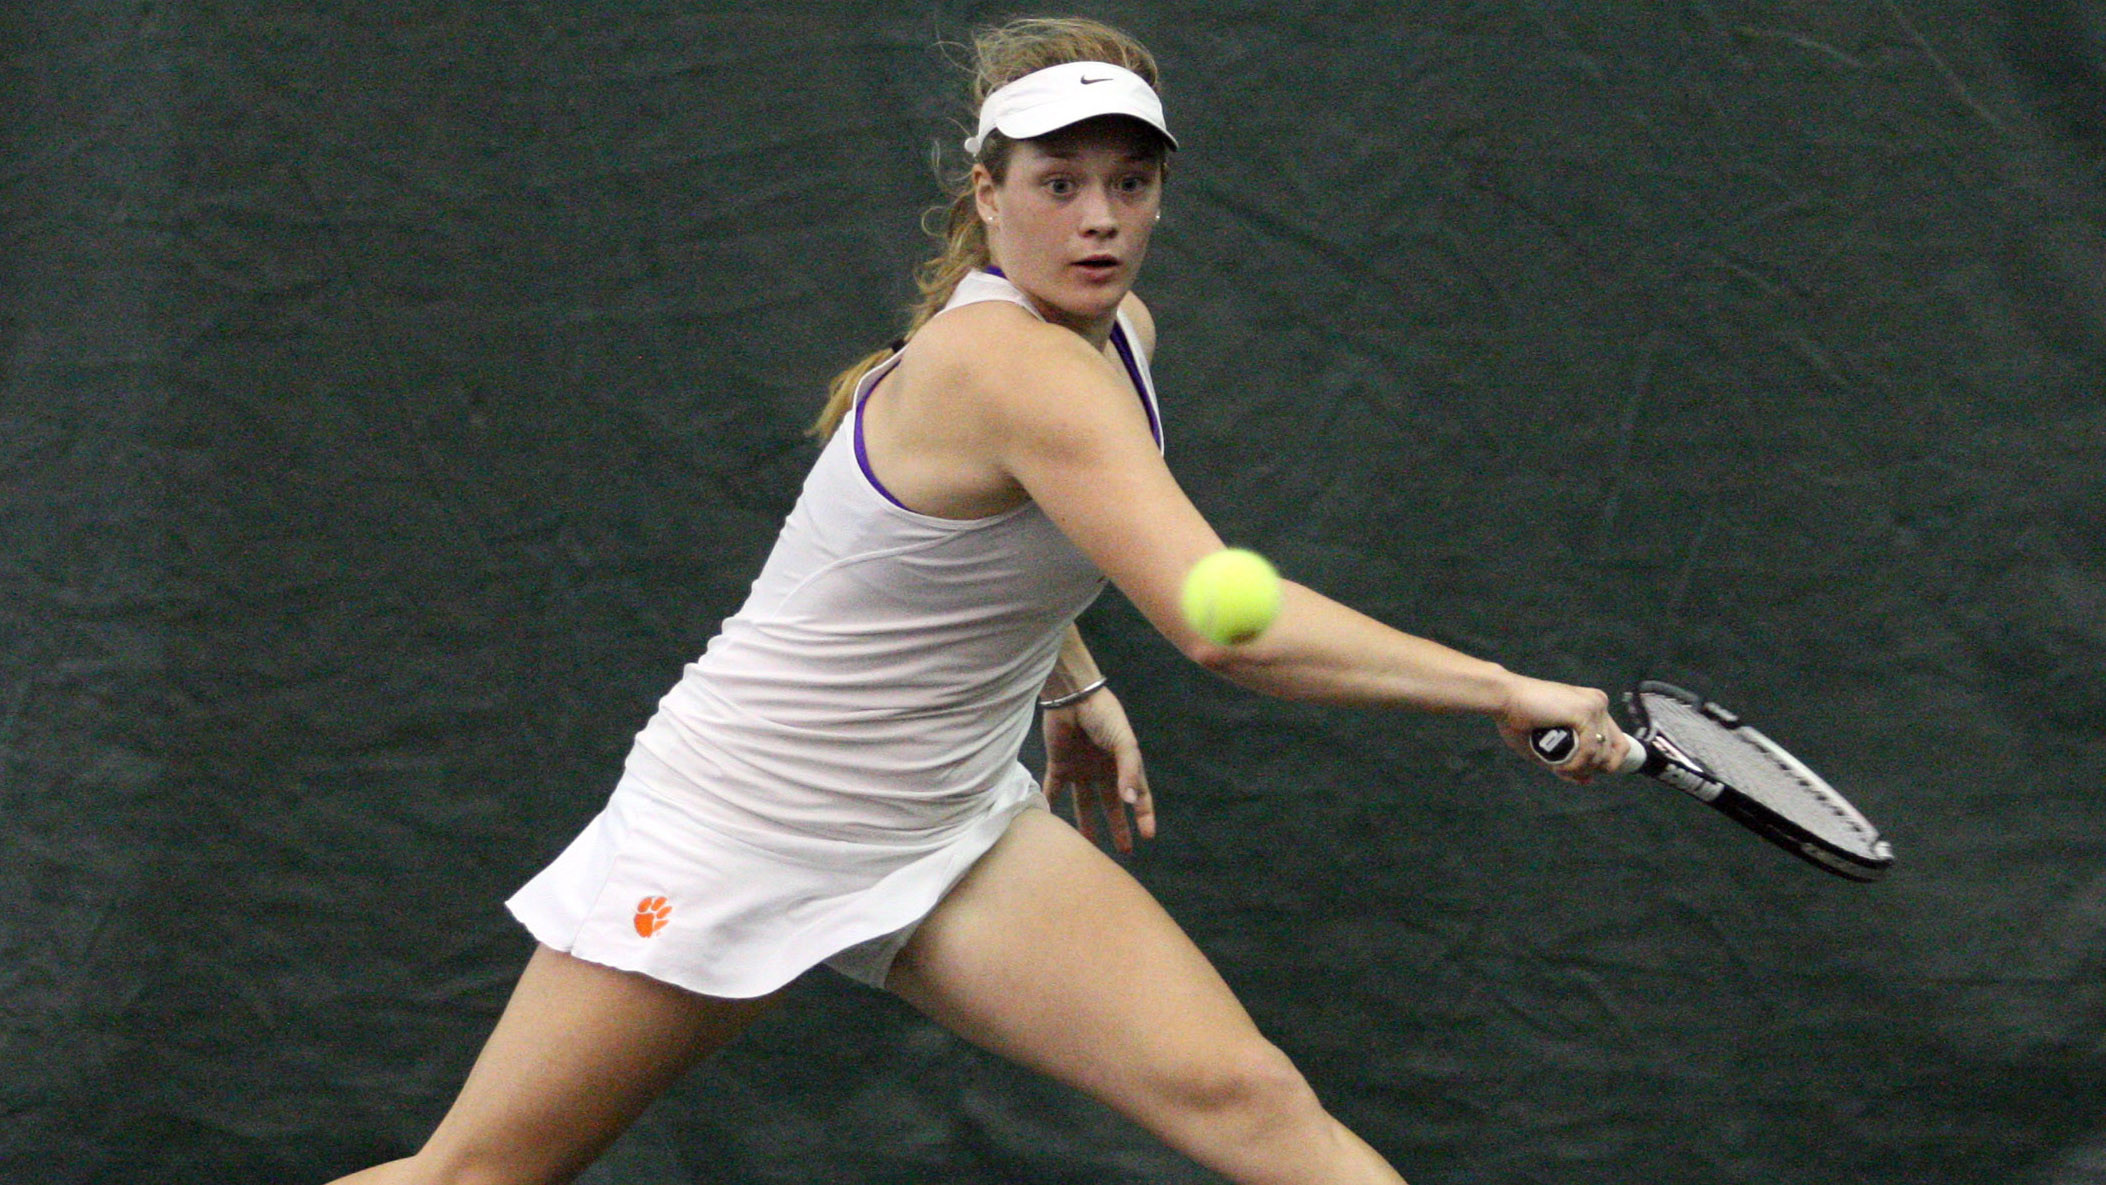 EXCLUSIVE: Koelzer enjoys touch of home at Clemson